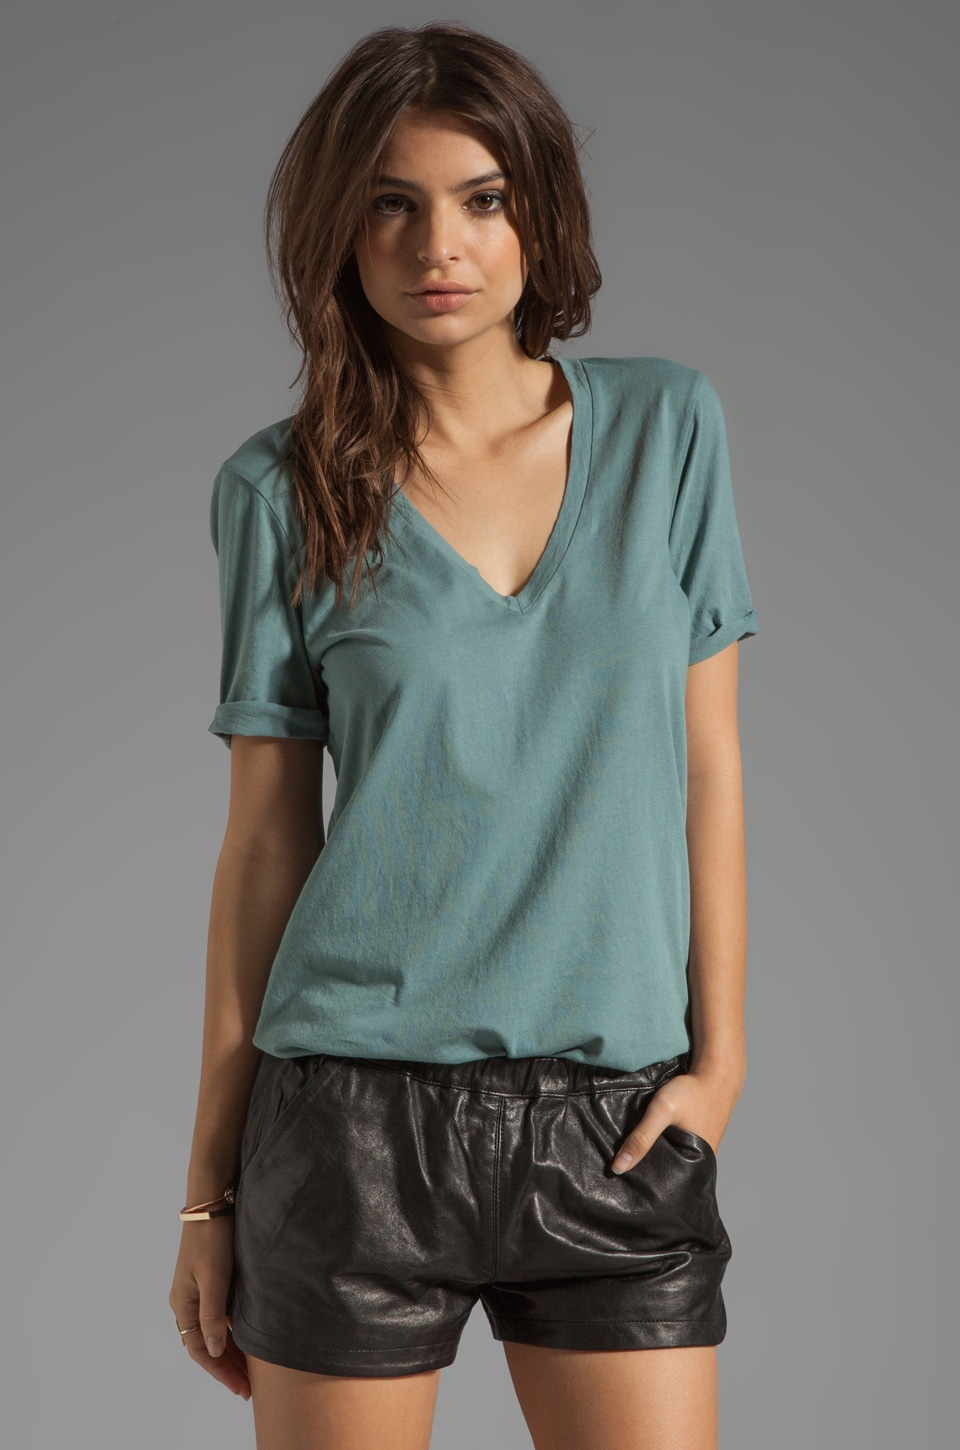 fLuXuS Perfect Tee in Sage